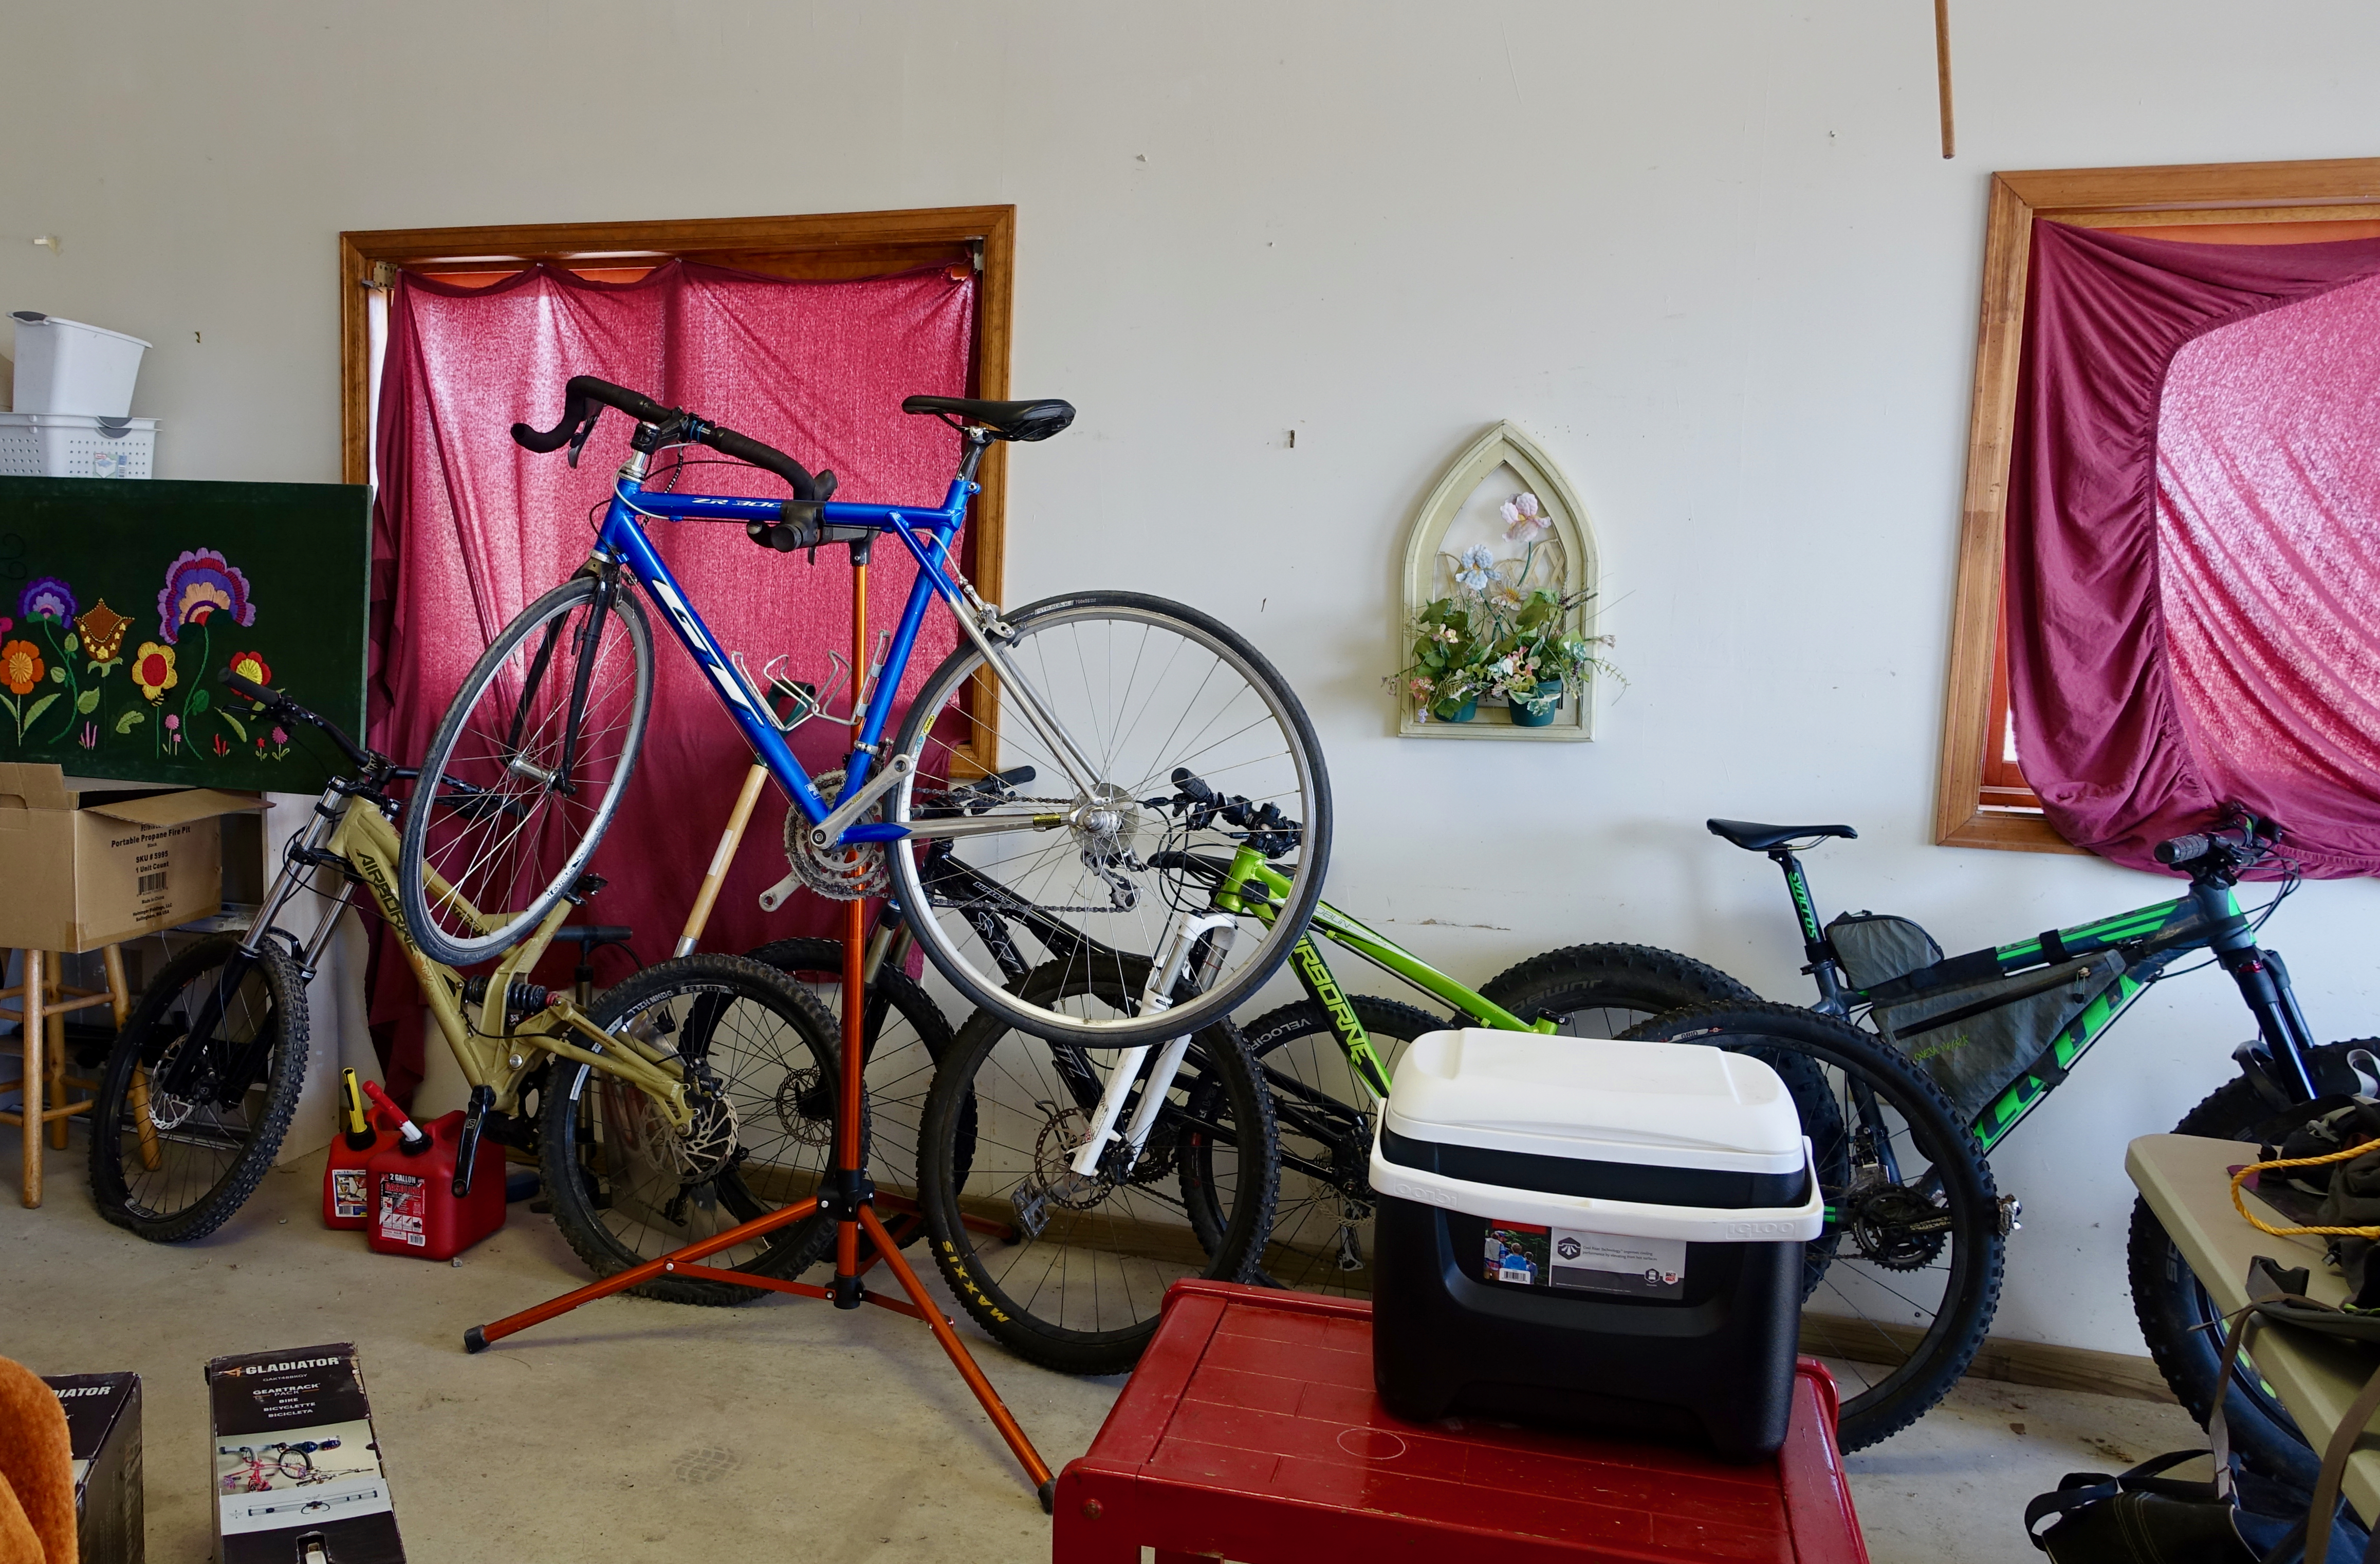 Messy garage. Letu0027s get this cleaned up! & The Gladiator Bike GearTrack Pack Makes Bike Storage Simple